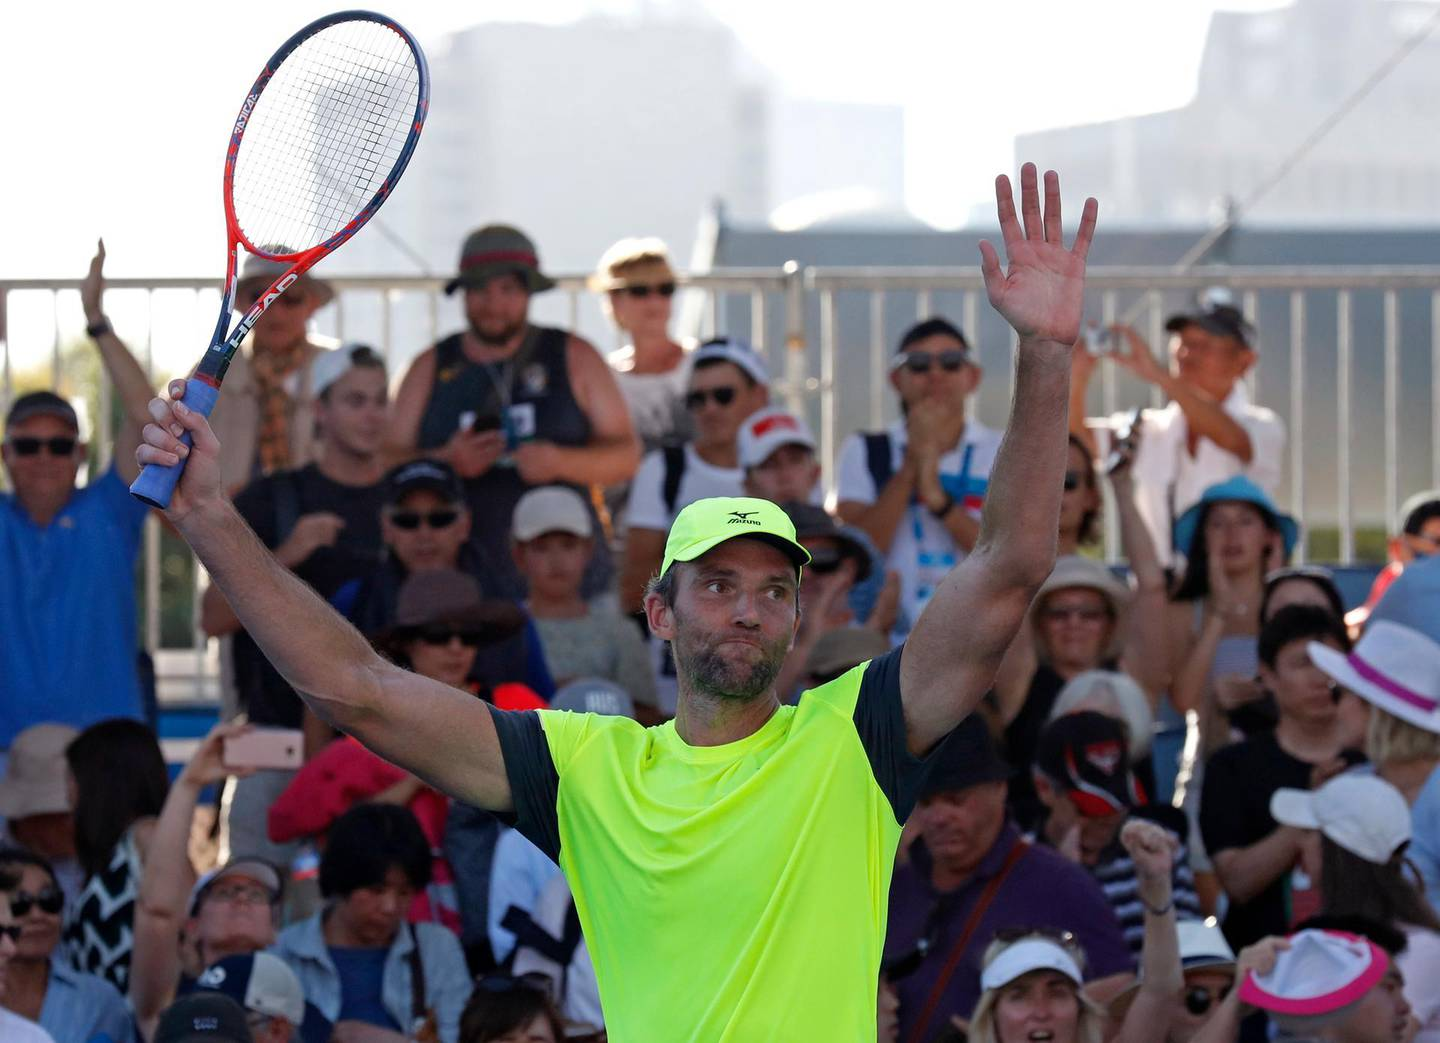 Croatia's Ivo Karlovic celebrates after winning over Japan's Yuichi Sugita during their second round match at the Australian Open tennis championships in Melbourne, Australia, Wednesday, Jan. 17, 2018. (AP Photo/Ng Han Guan)